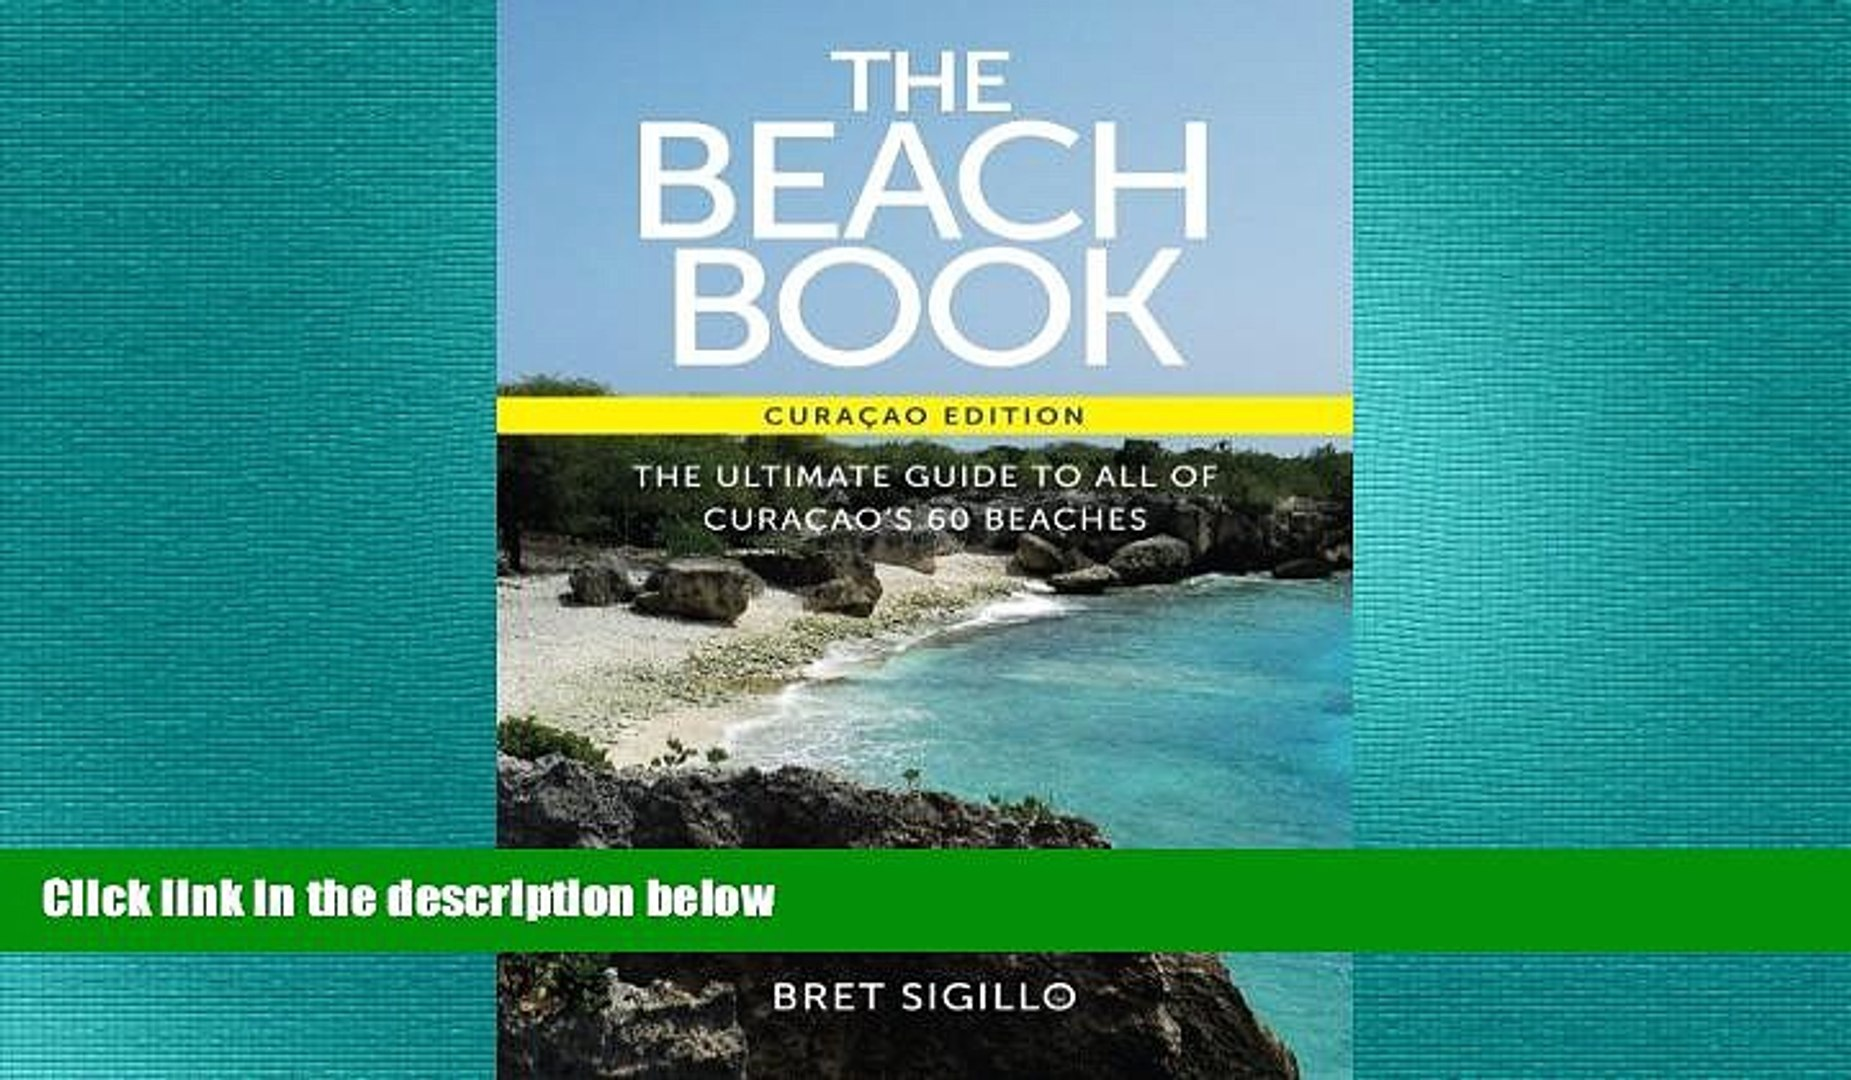 Curacao edition The Beach Book